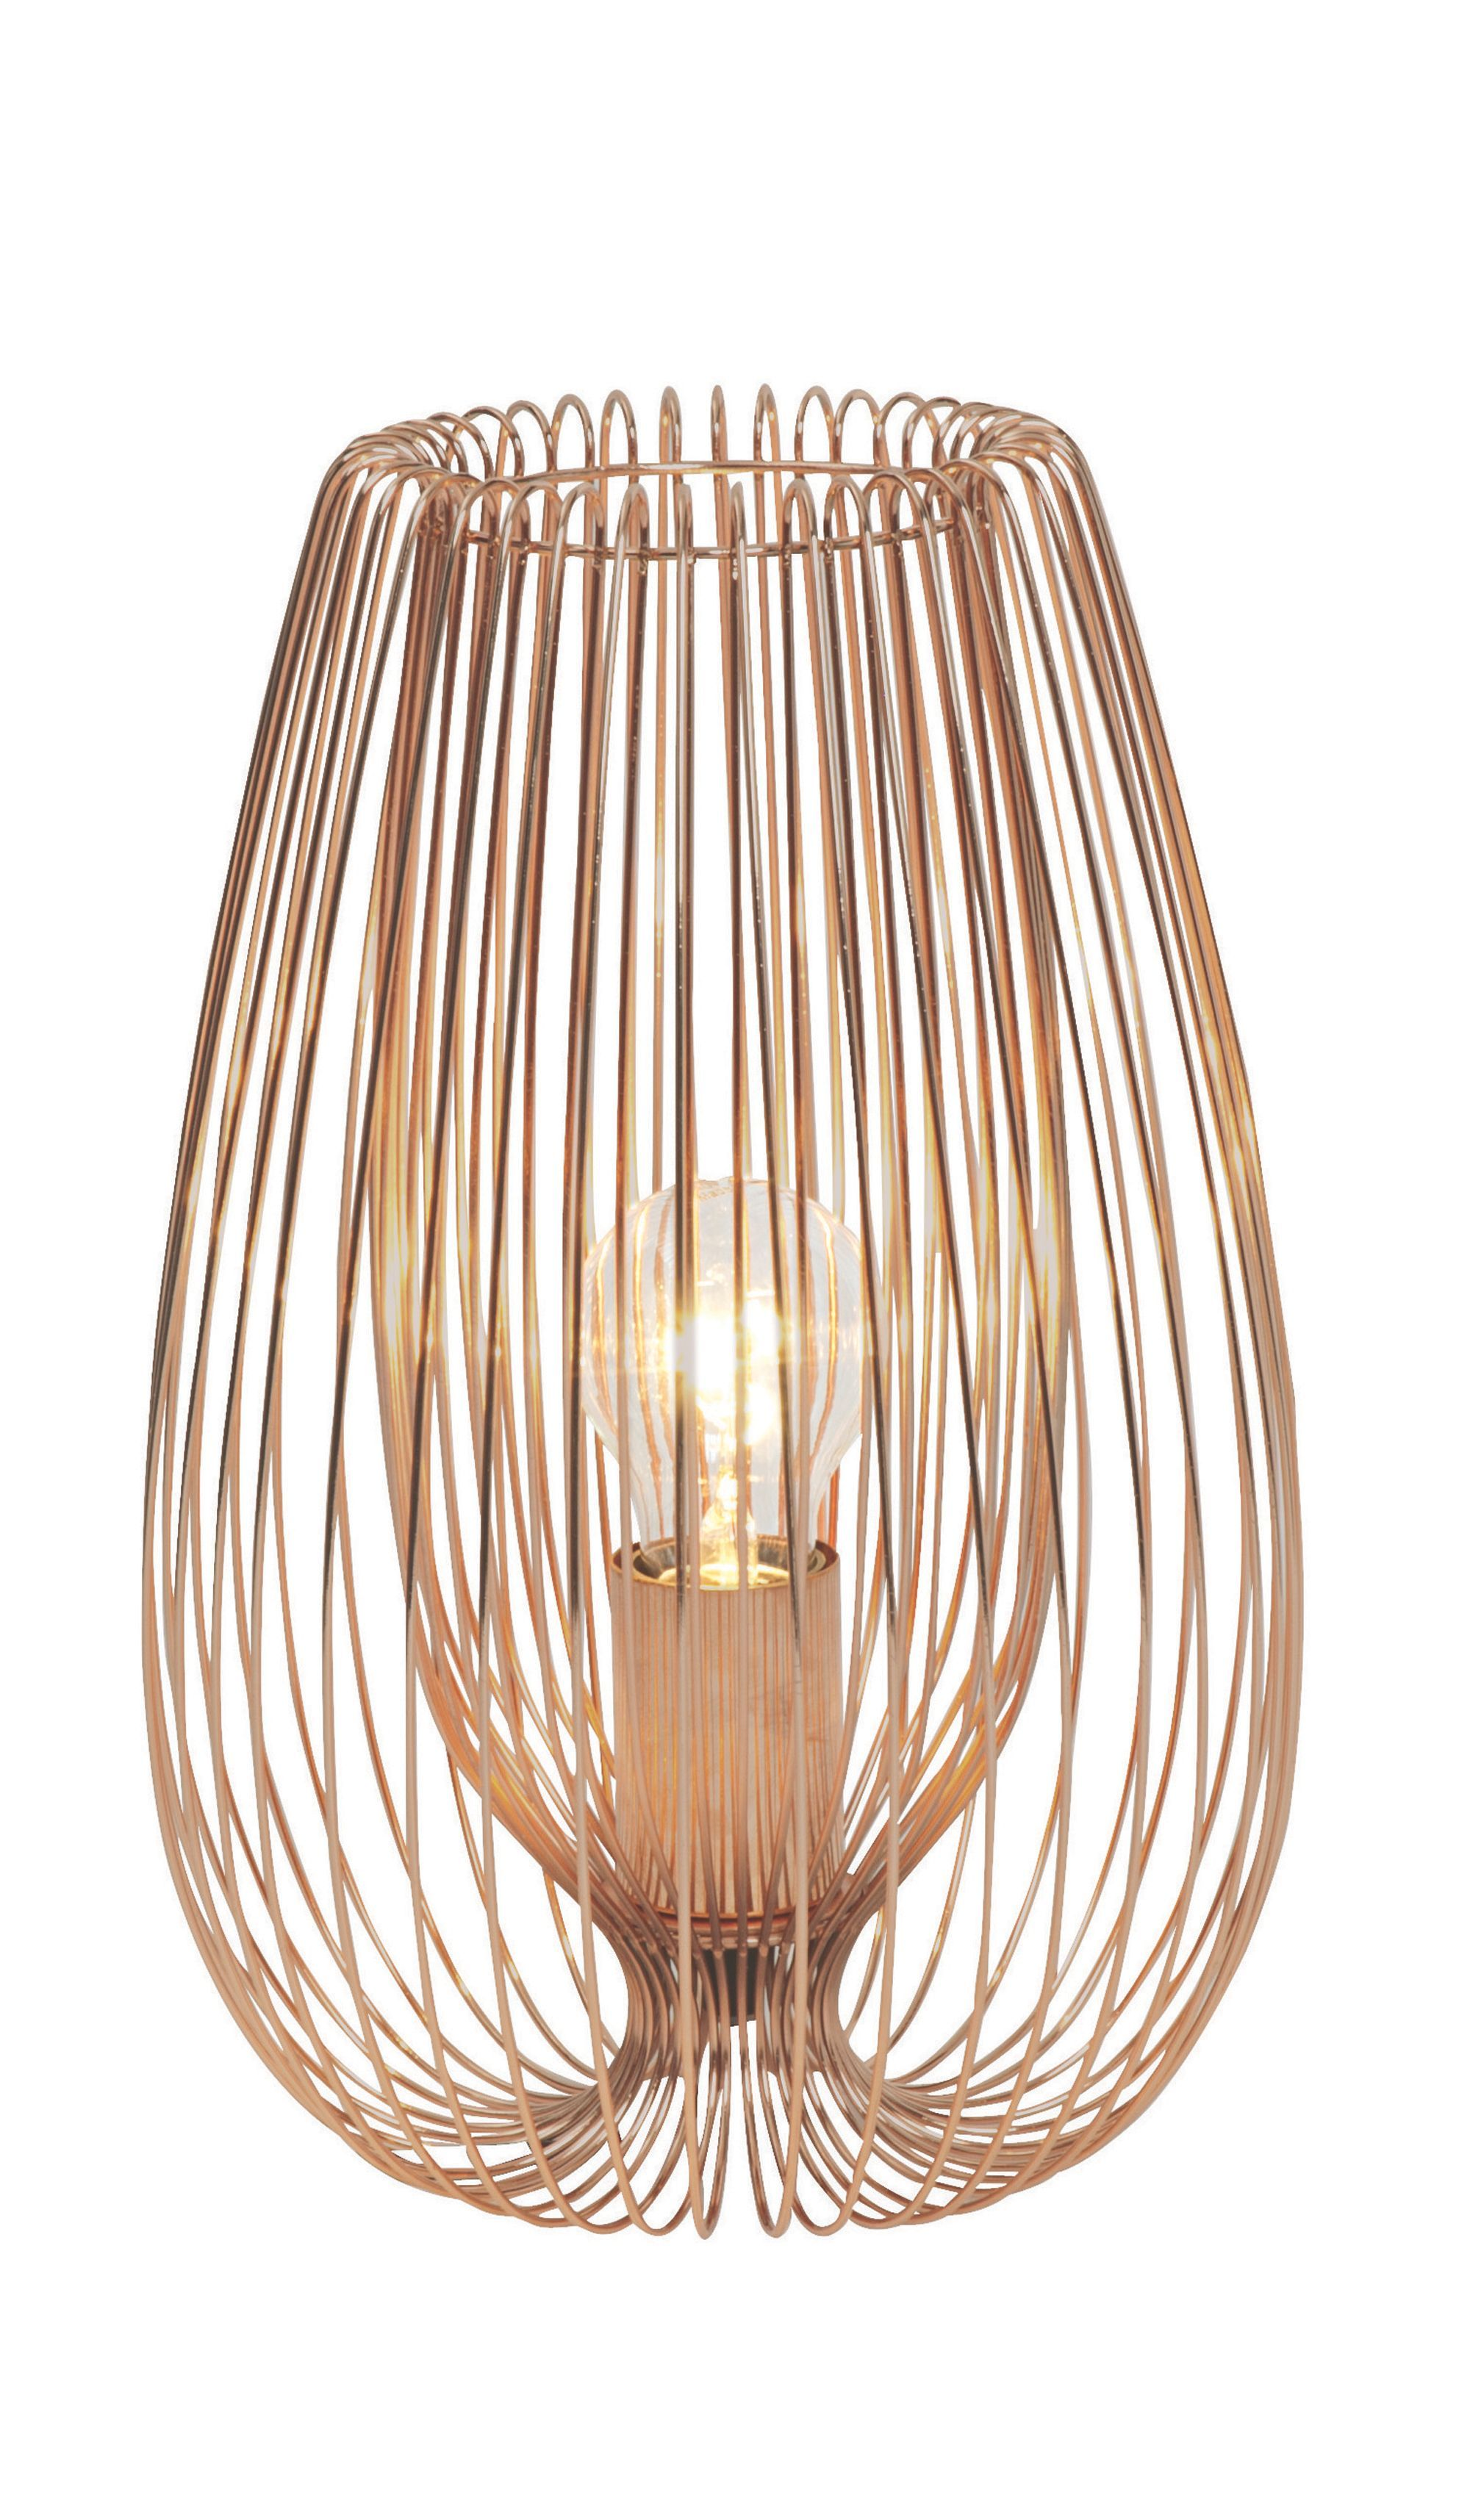 Jonas brown copper wire table lamp copper wire lights and jonas brown copper wire table lamp bq for all your home and garden supplies and advice on all the latest diy trends keyboard keysfo Image collections